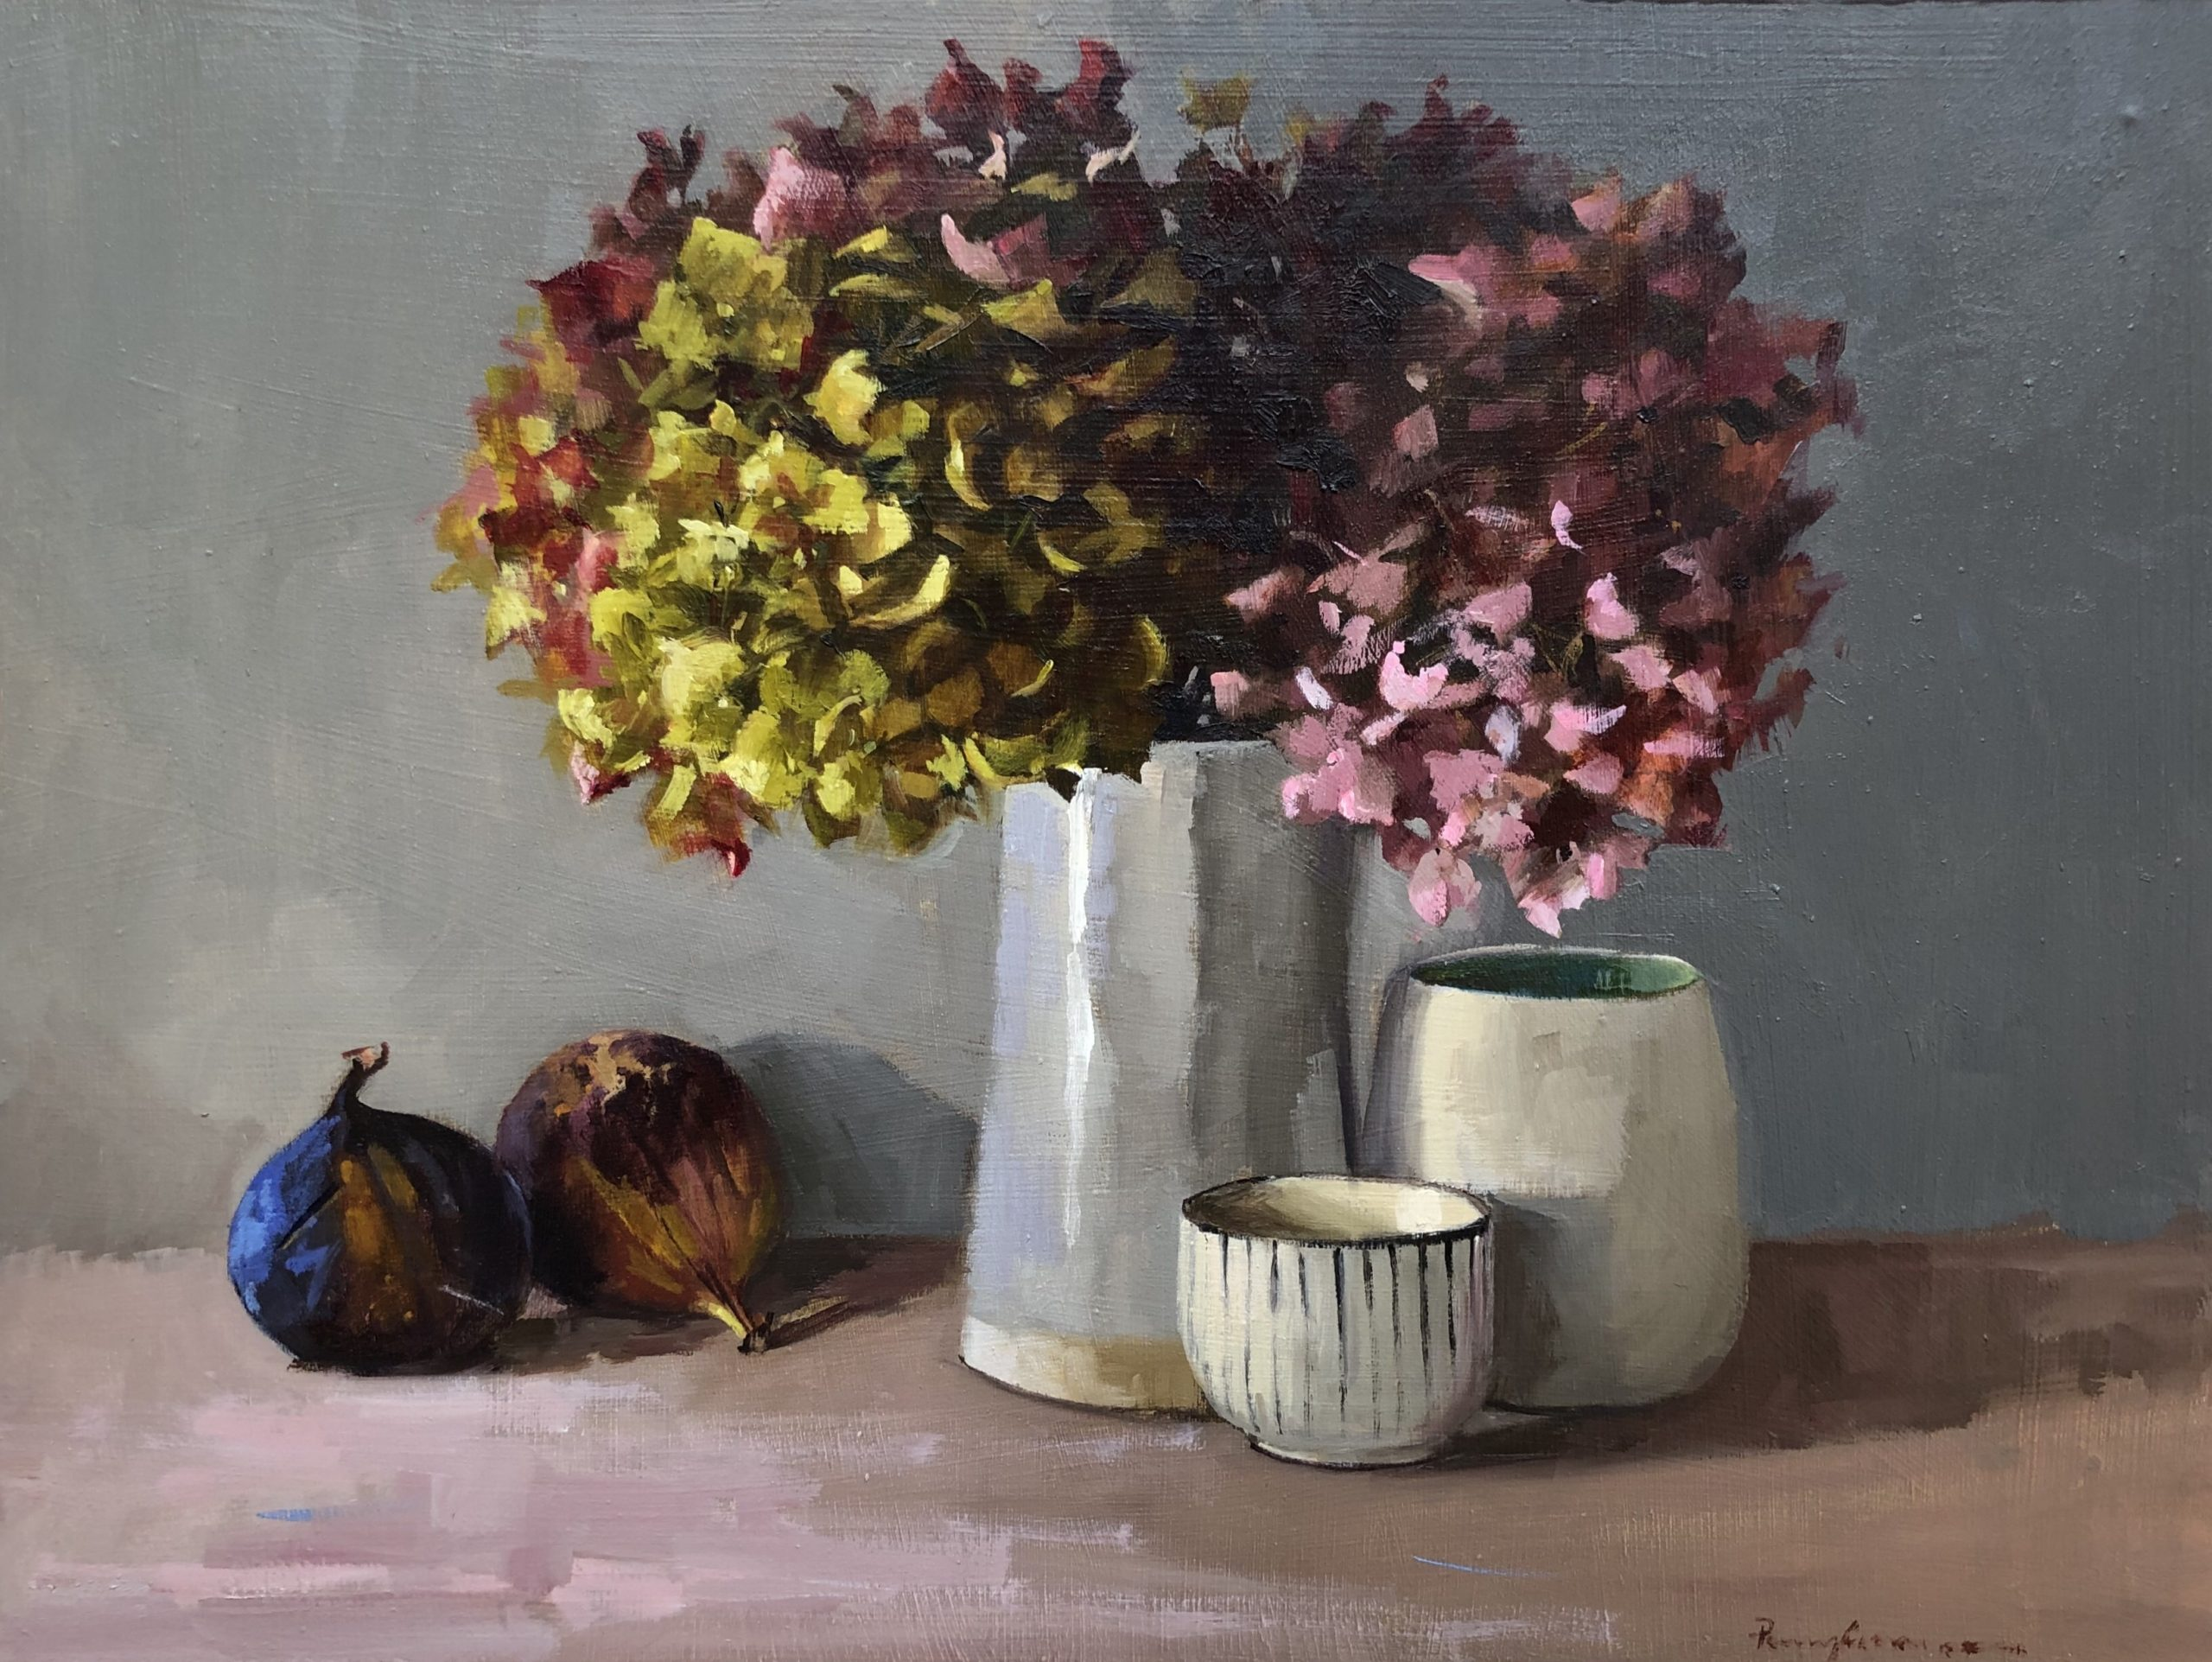 Hydrangeas, figs and pots by Penny German